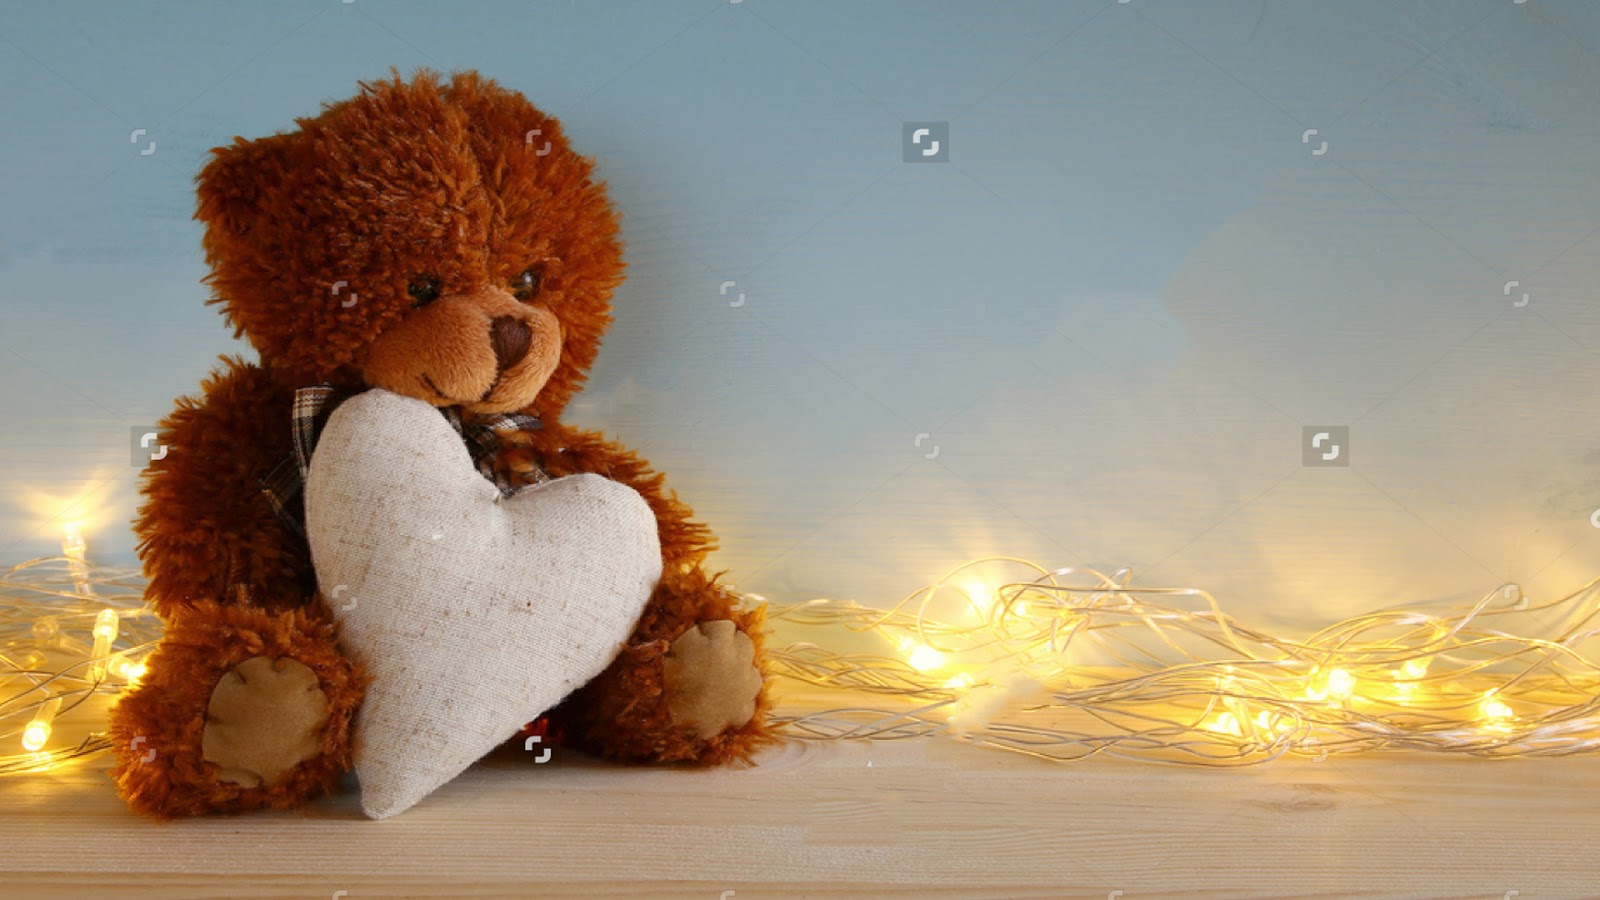 Happy Teddy Day Wallpapers HD Download Free 1080p